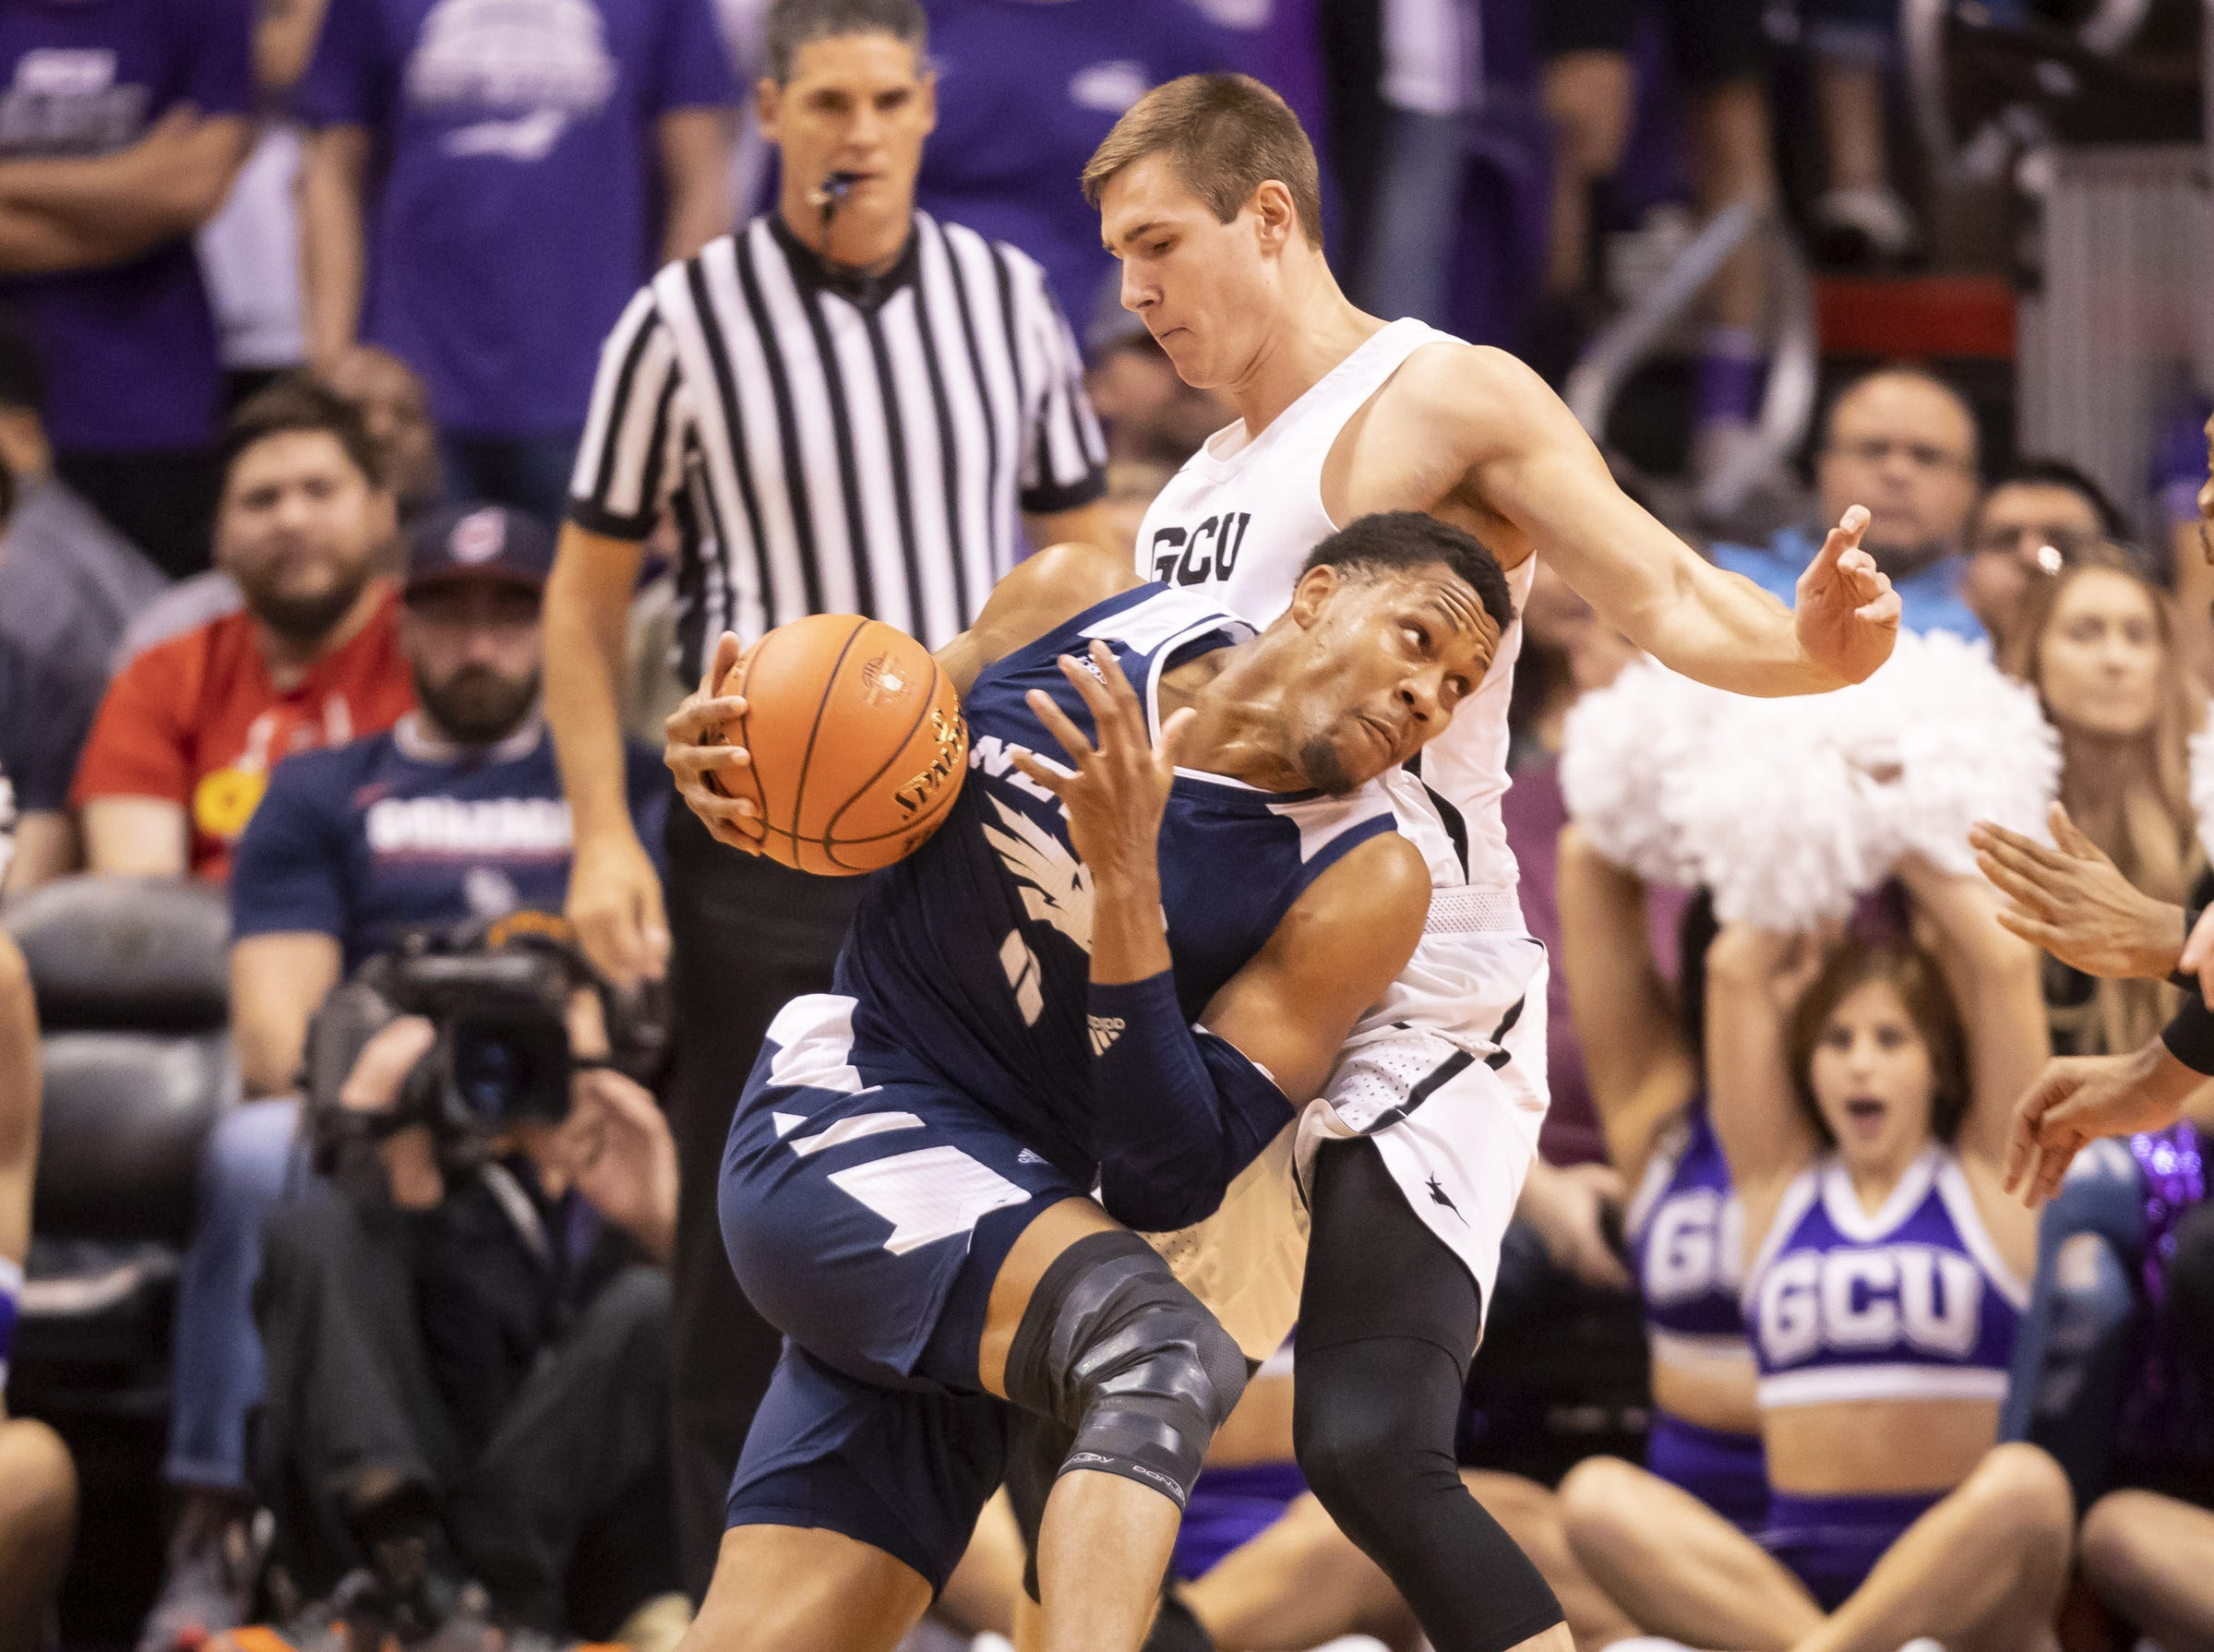 Forward Tre'Shawn Thurman (0) of Nevada Wolf Pack drives to the basket against guard Gerard Martin (42) of the Grand Canyon Antelopes during the 2018 Jerry Colangelo Classic at Talking Stick Resort Arena on Sunday, December 9, 2018 in Phoenix, Arizona.